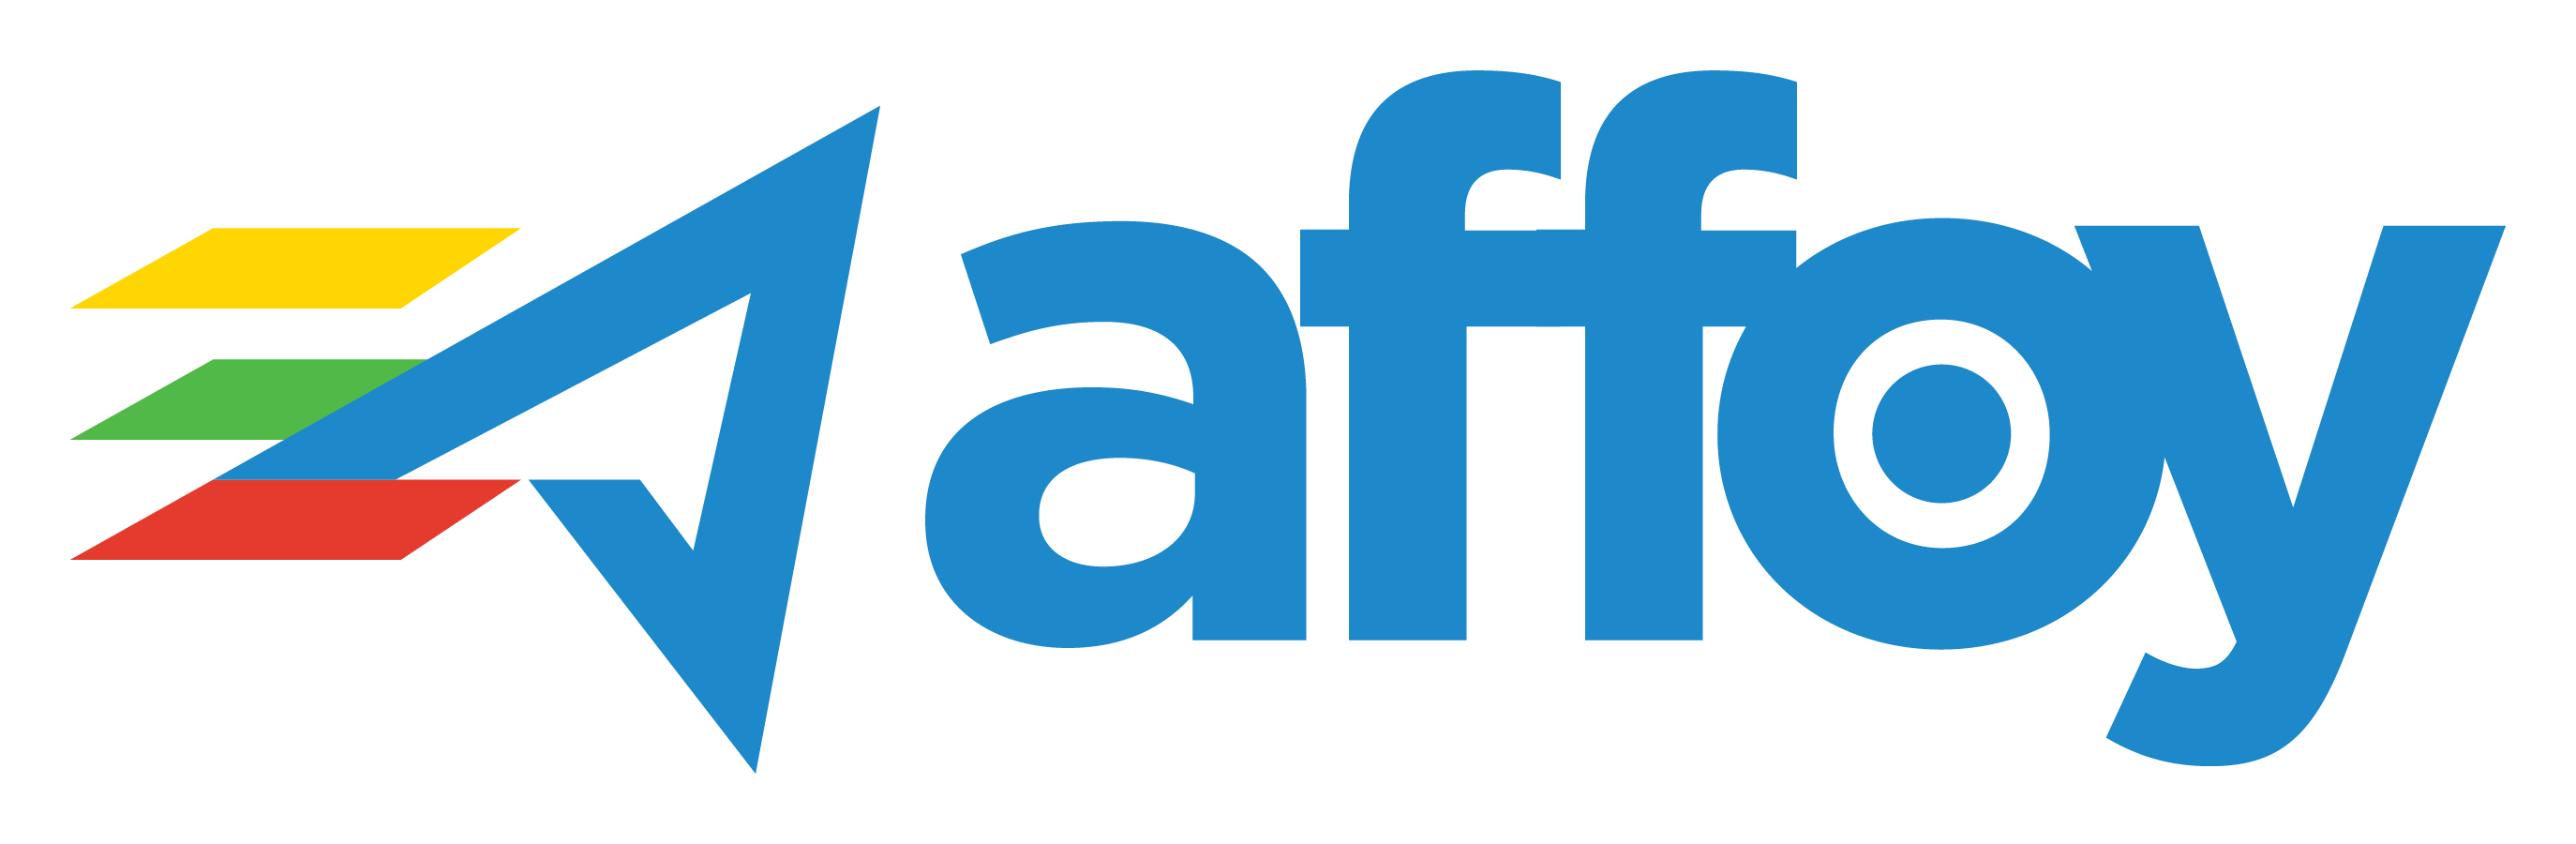 Affoy Digital Media Pvt Ltd